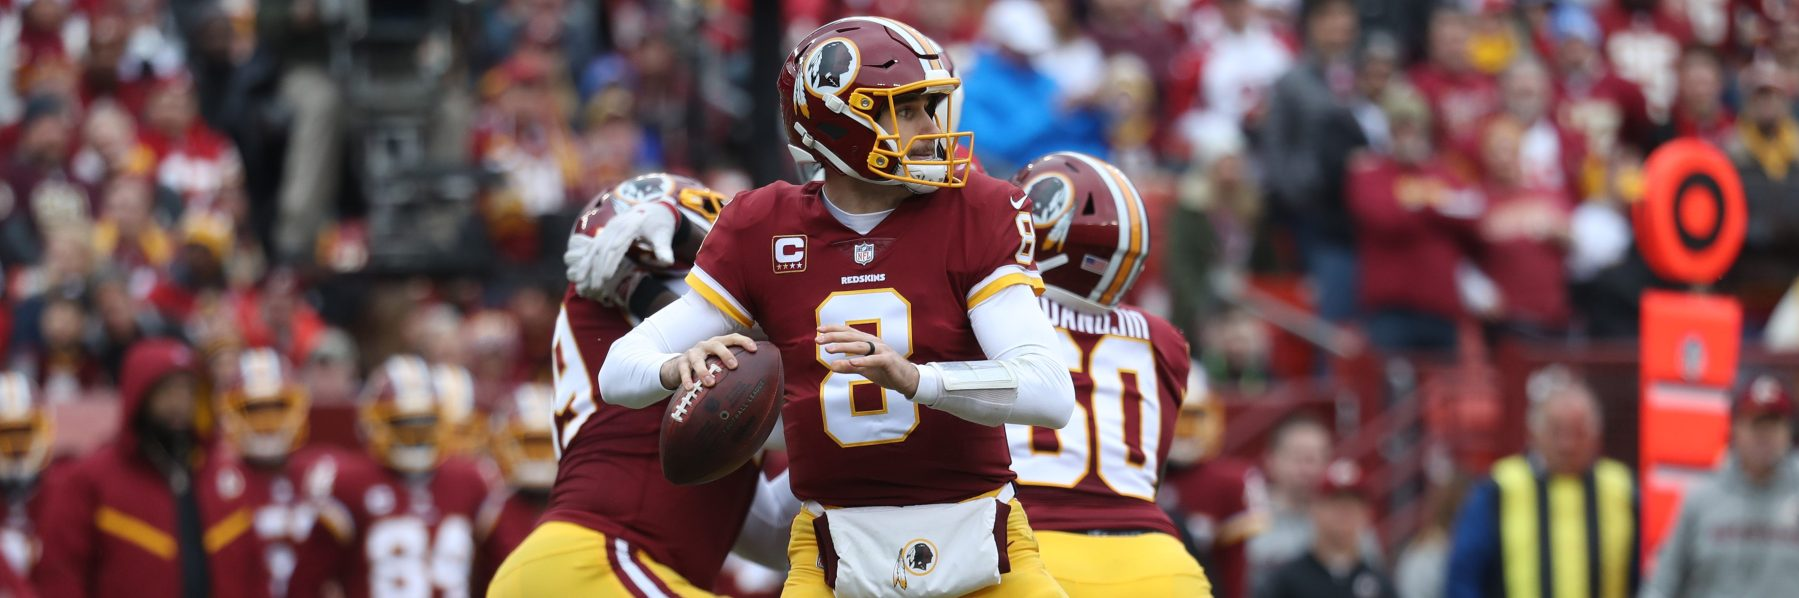 Ex-Redskins quarterback Kirk Cousins  looks to pass in the second quarter against the Arizona Cardinals at FedEx Field on December 17, 2017. (Photo by Rob Carr/Getty Images)